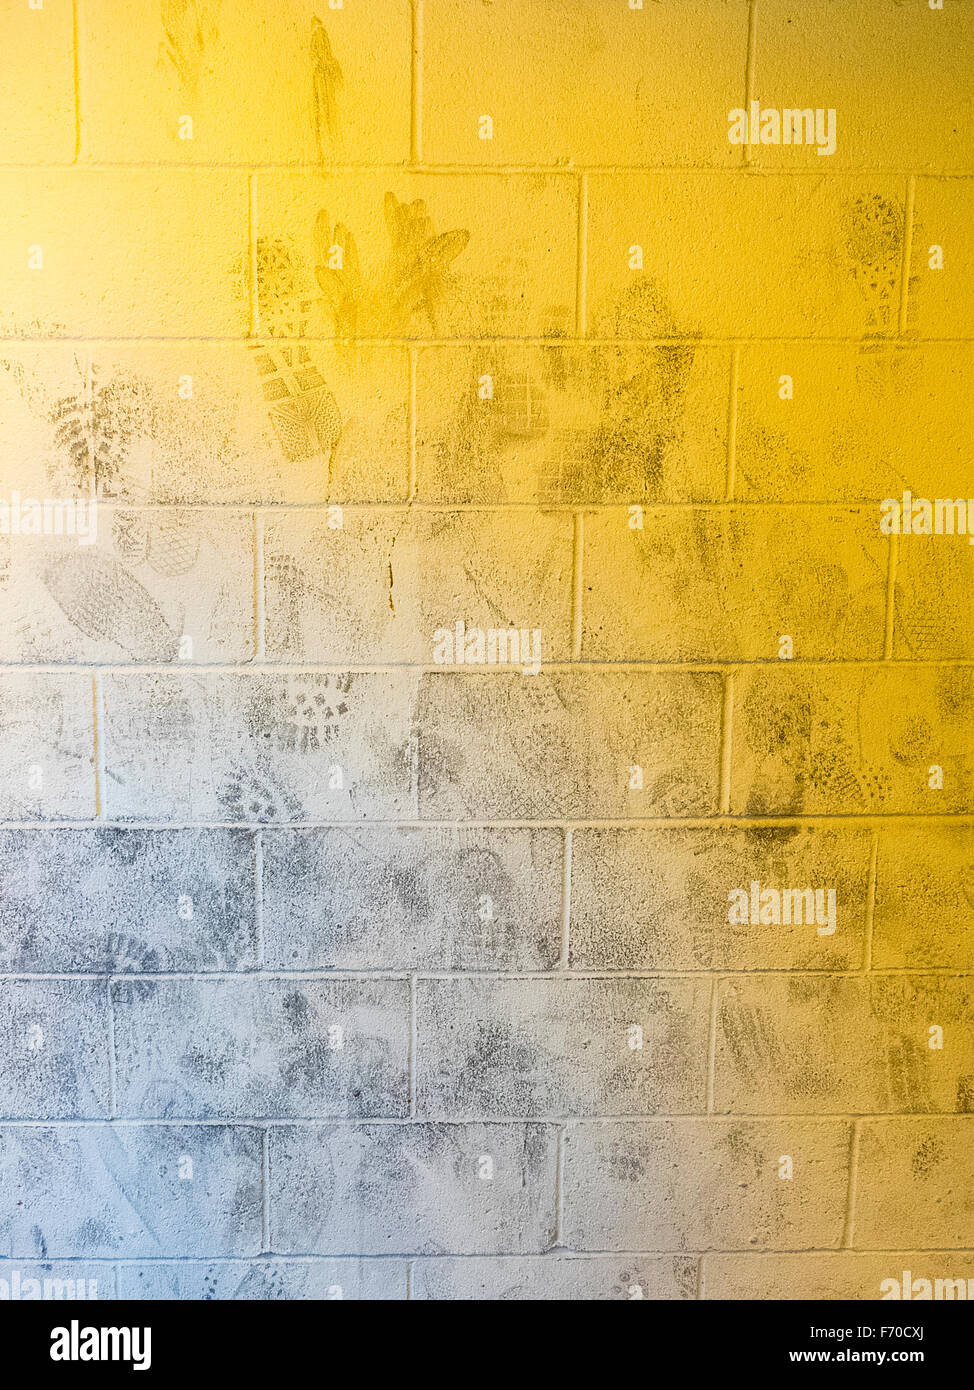 Concrete Block Wall Stock Photos & Concrete Block Wall Stock Images ...